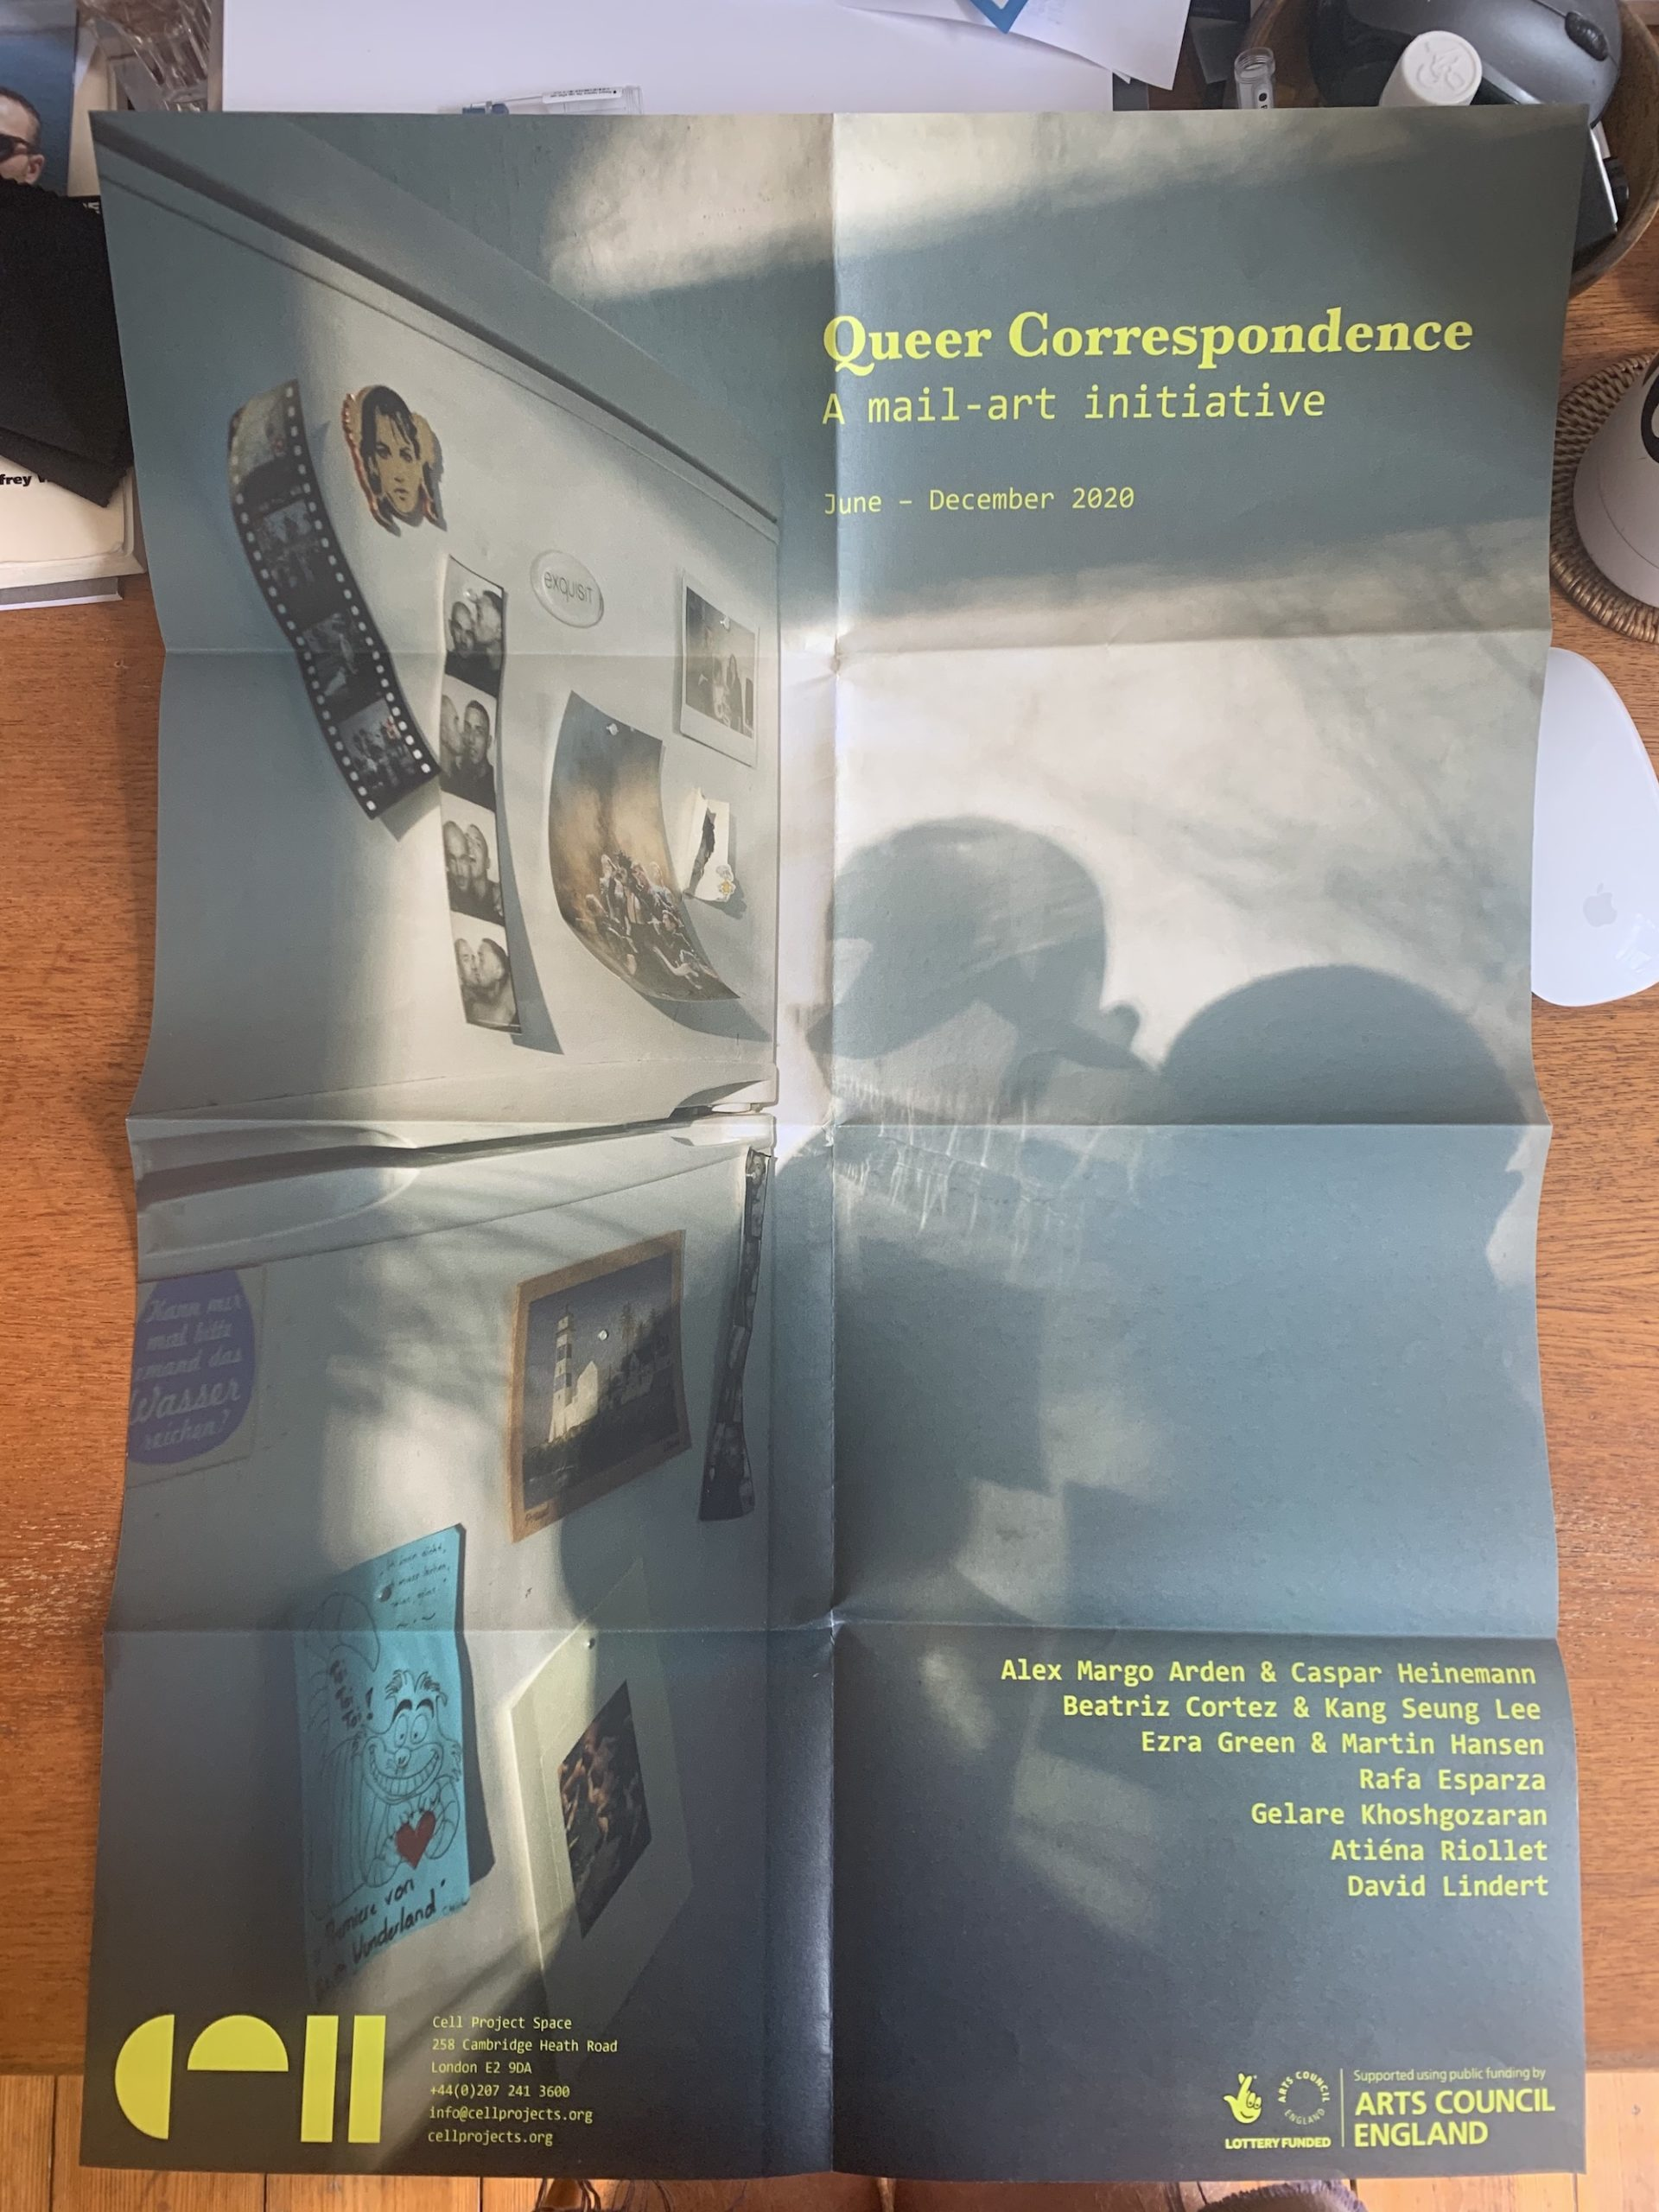 Queer Correspondence (poster), featuring Untitled (for Queer Correspondence), 2020, by David Lindert. Courtesy Cell Project Space